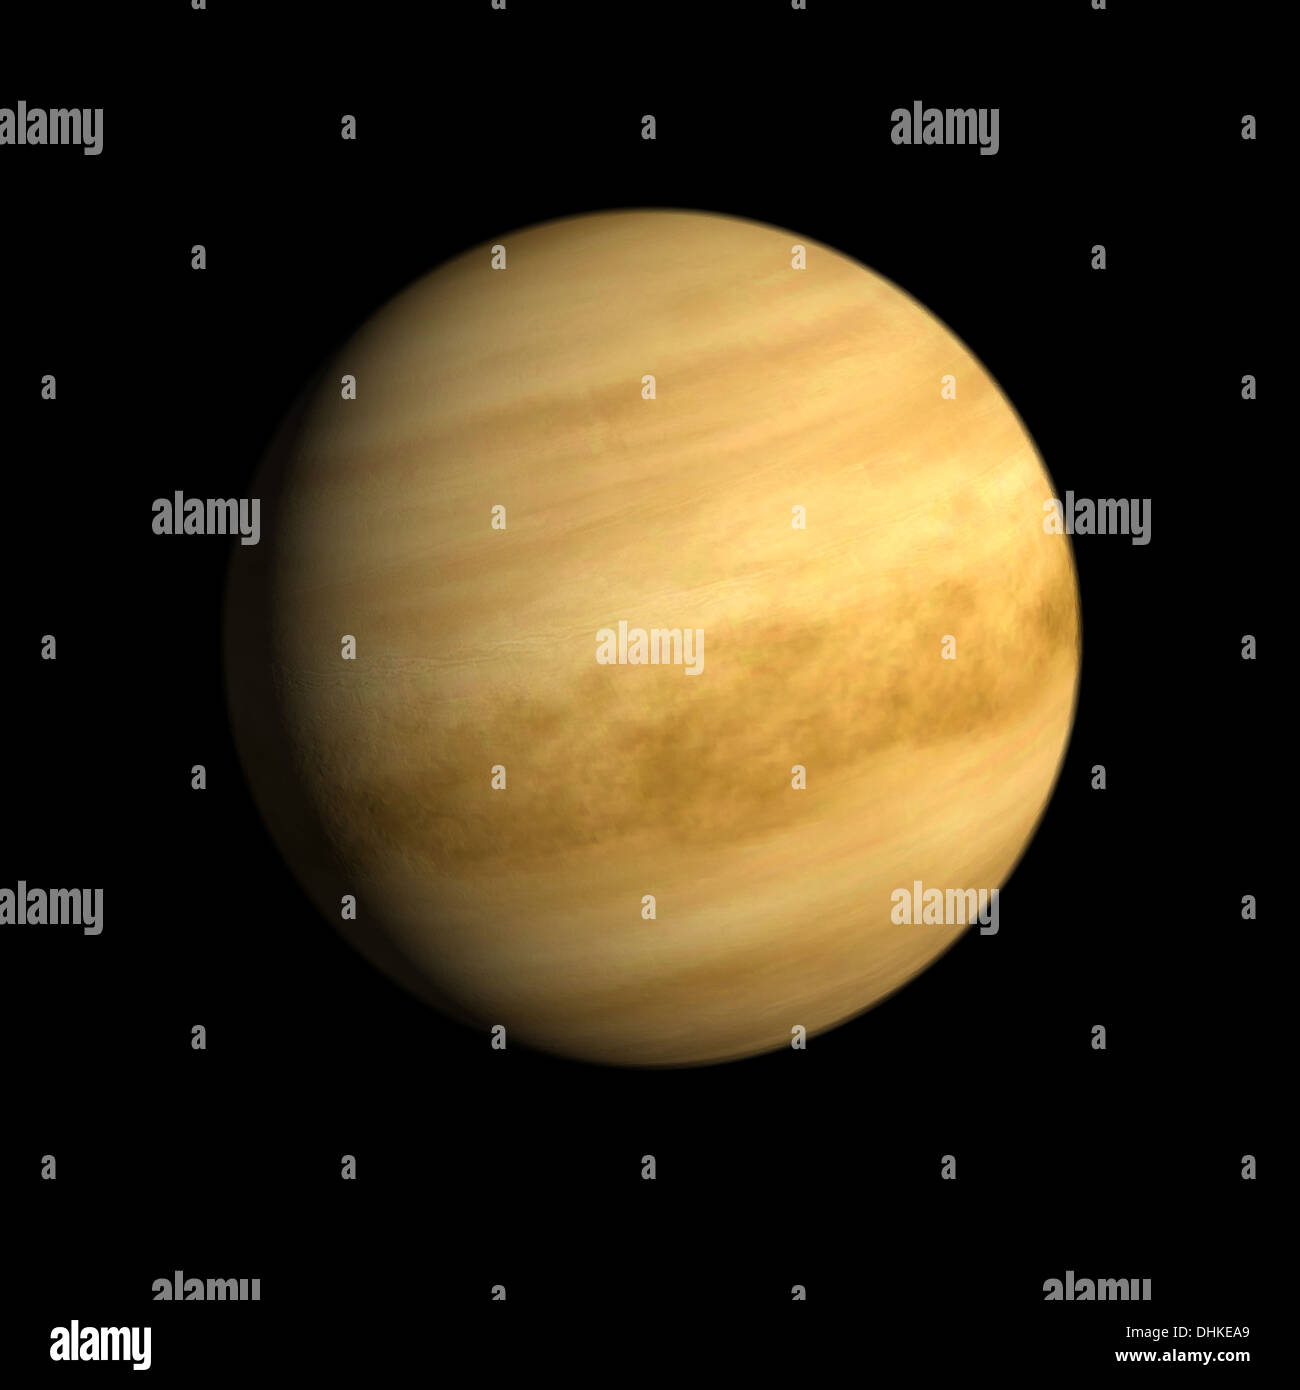 A rendering of the planet venus on a clean black background stock a rendering of the planet venus on a clean black background voltagebd Choice Image